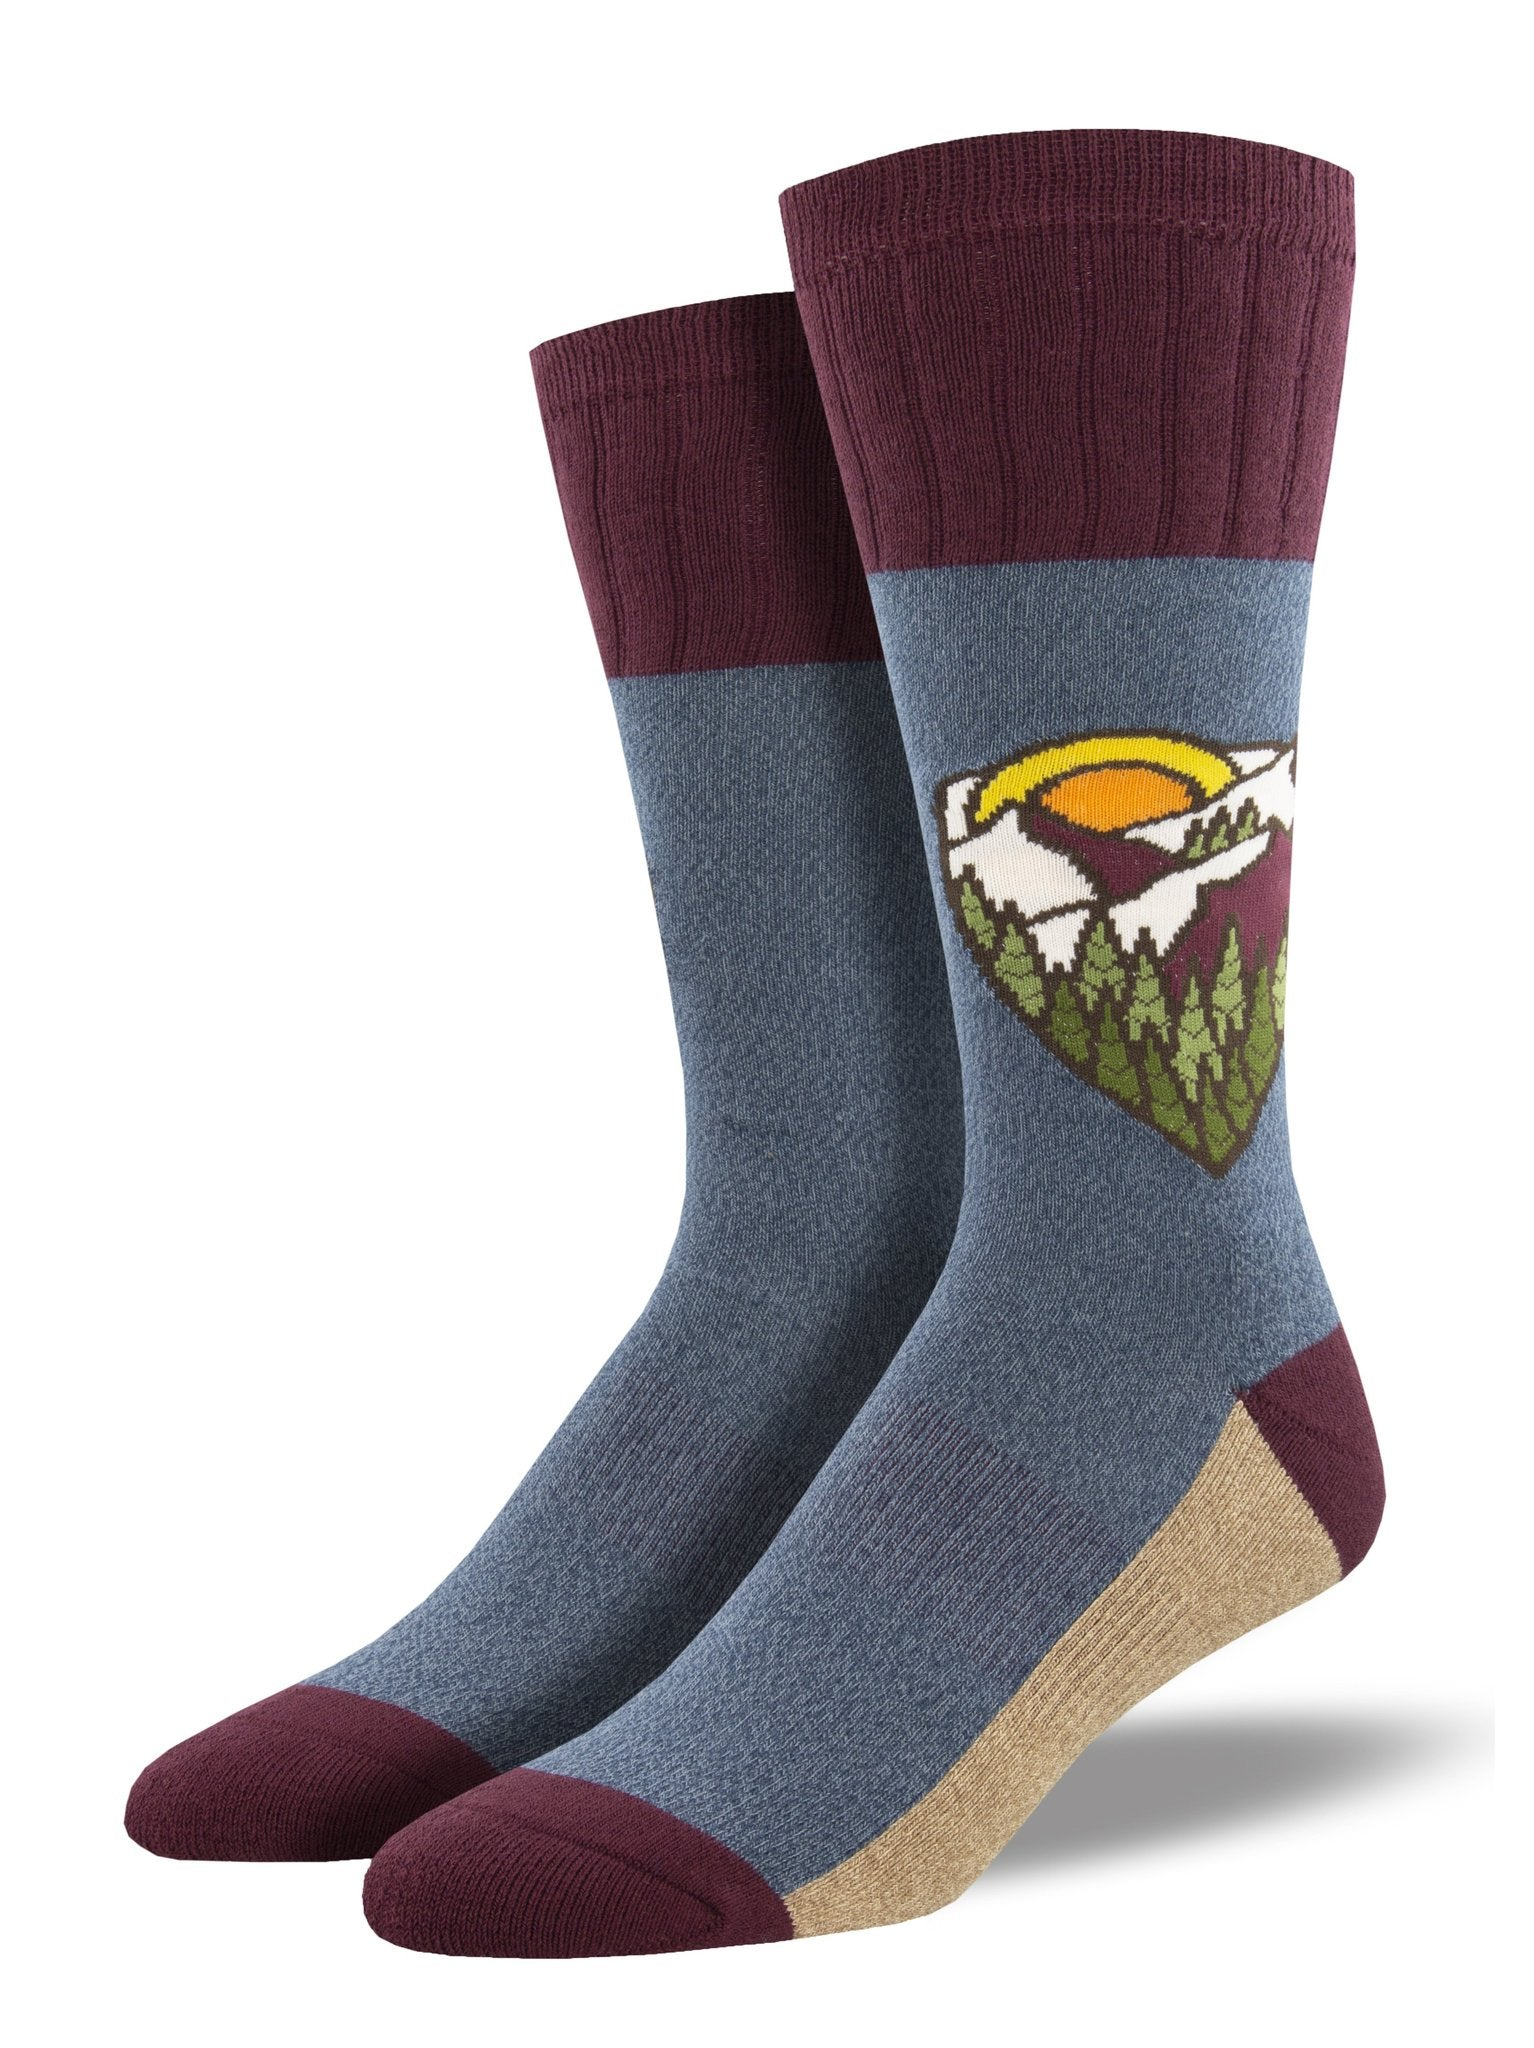 AtomicChild Mountain Top Socks | Delight